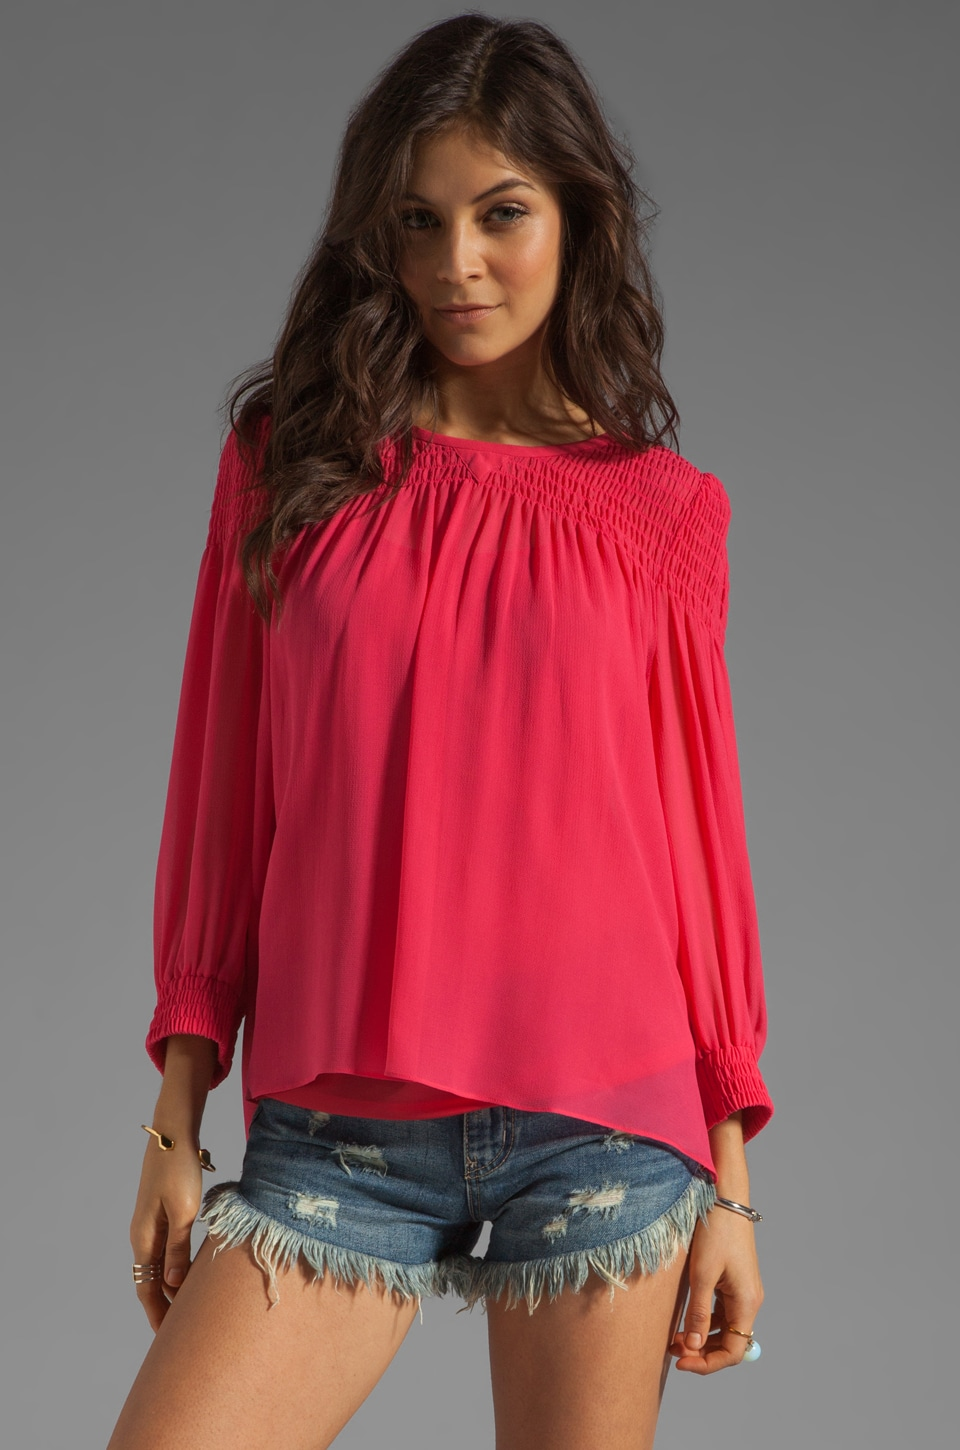 Marc by Marc Jacobs Crystal Textured Silk Top in Neon Pink